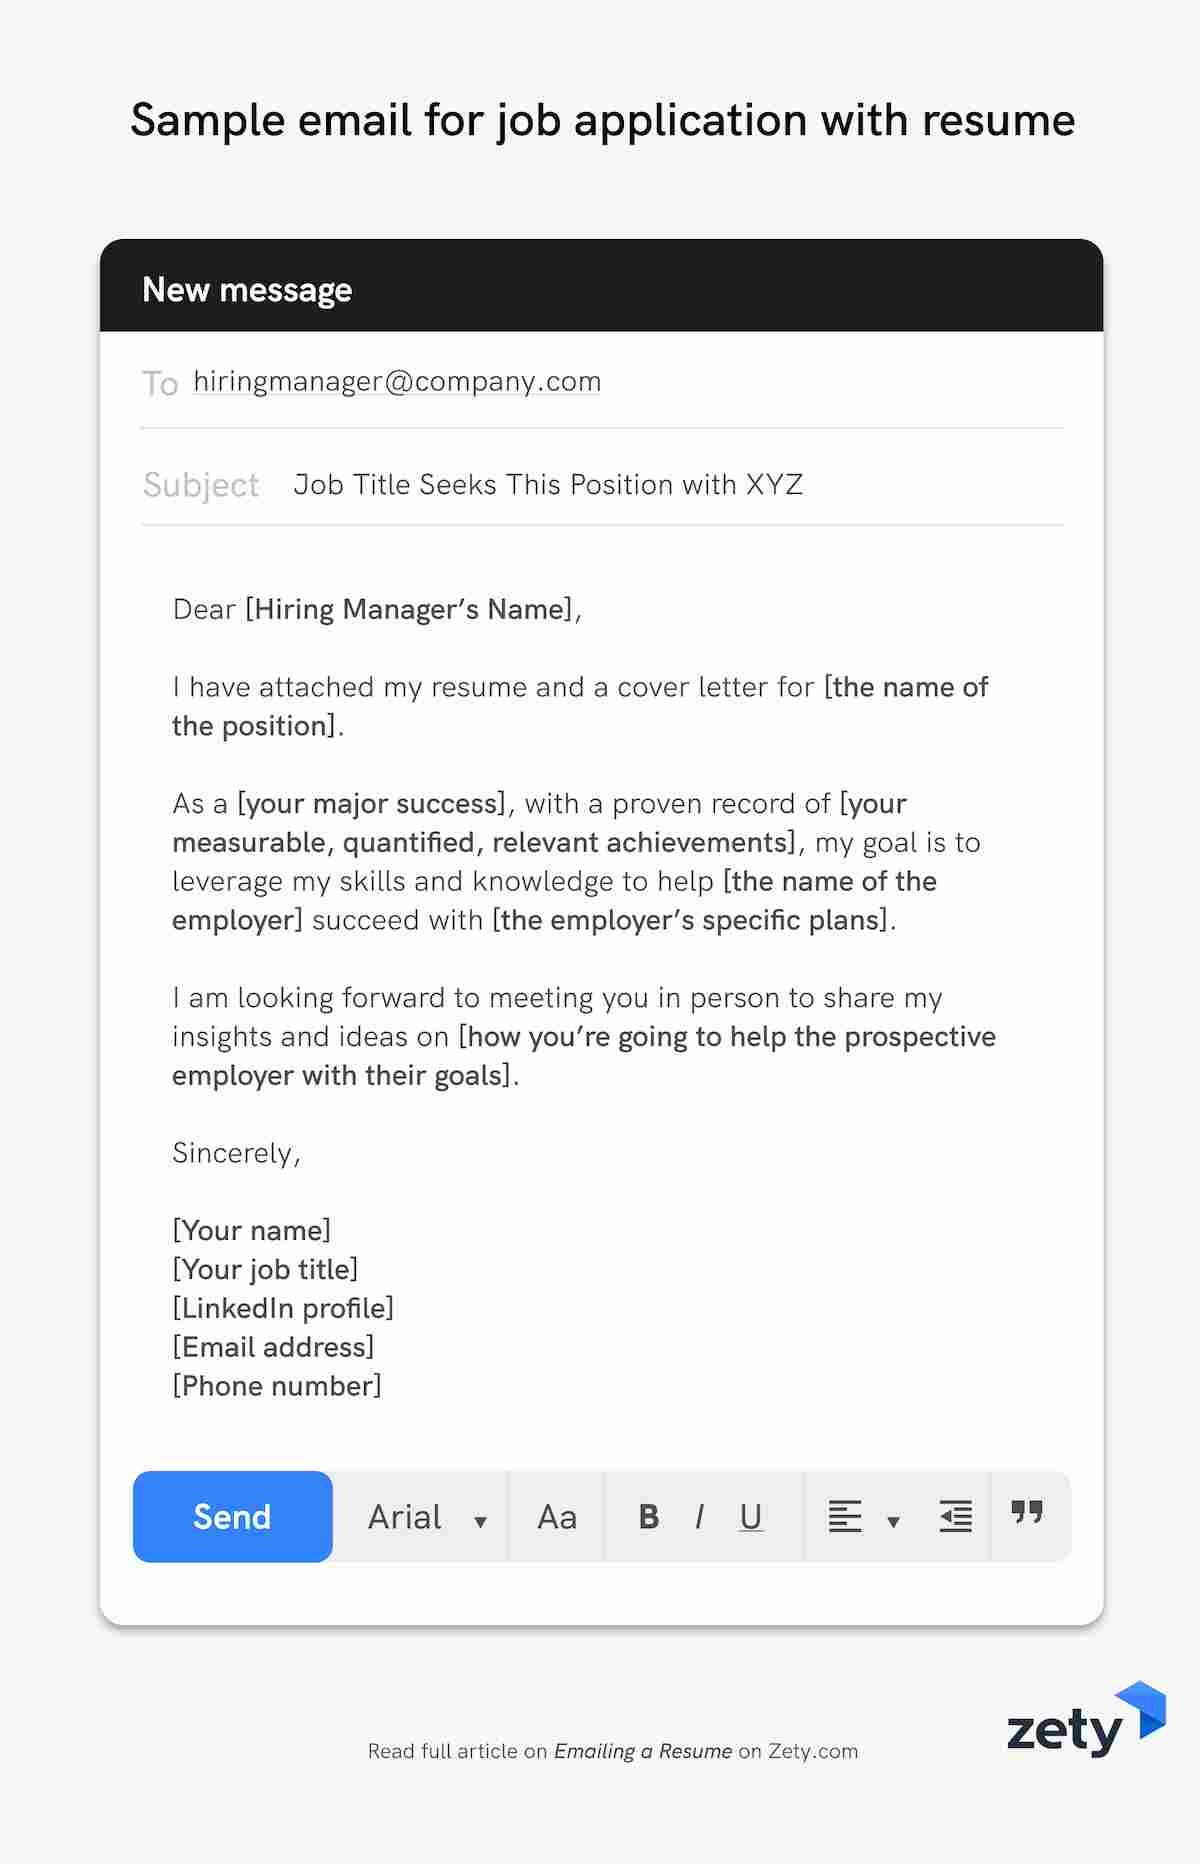 emailing resume job application email samples sending with and cover letter sample for Resume Sending Email With Resume And Cover Letter